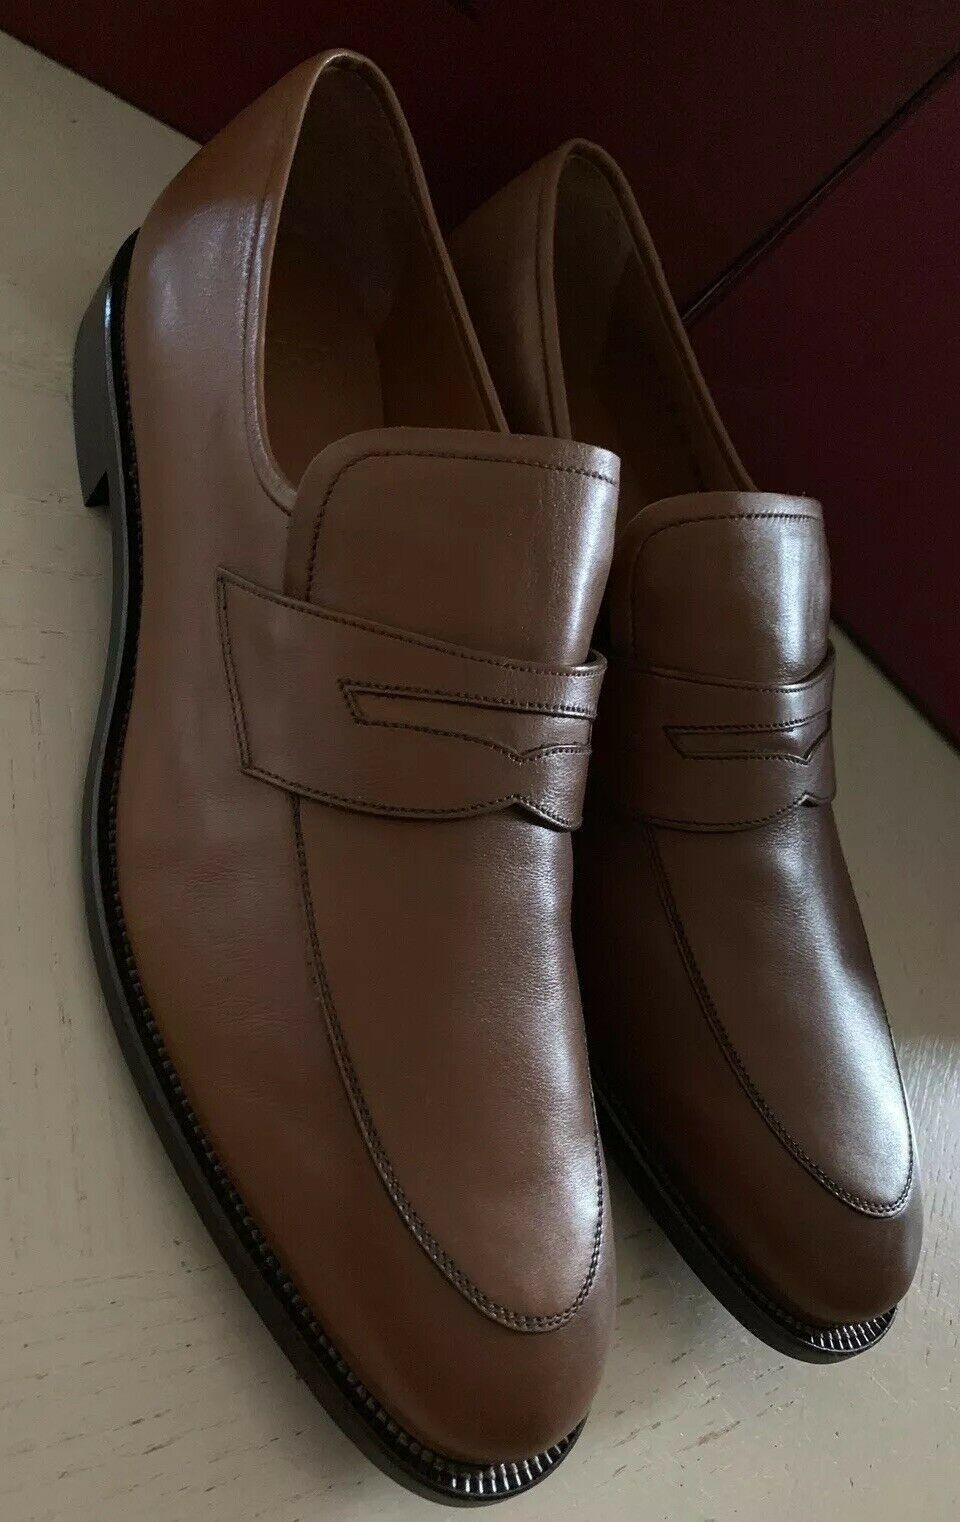 New $725 Bally Men Salasan Calf Plain Leather Loafers Shoes Brown 9.5 US